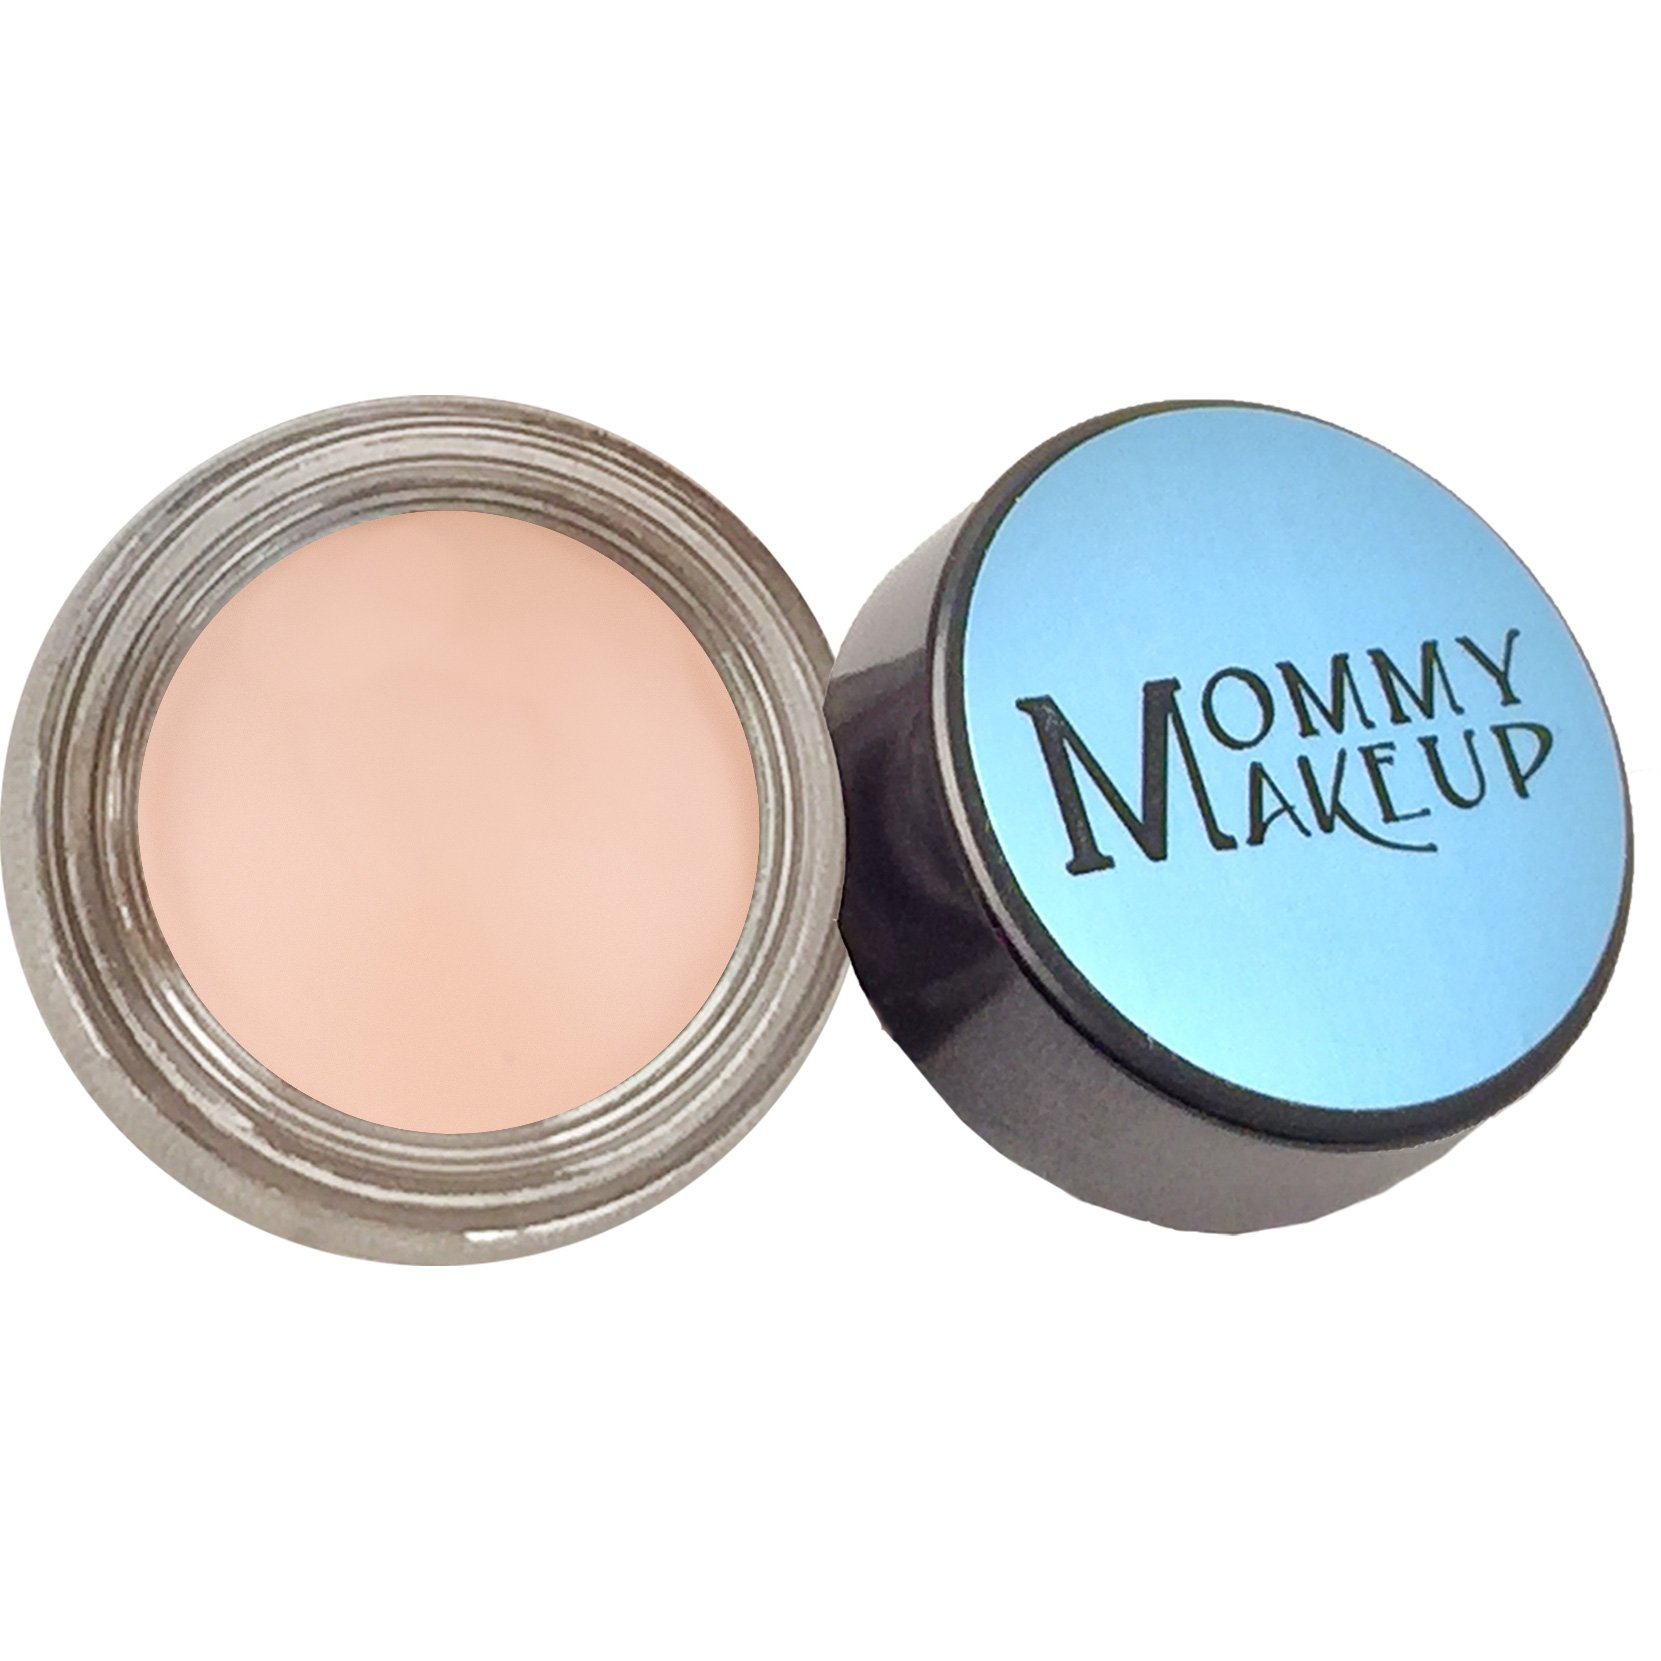 Stay Put Matte Lip Cream Kiss Proof Lipstick Ecer No 4 Any Wear Creme In Brighten Up A Warm The Ultimate Multi